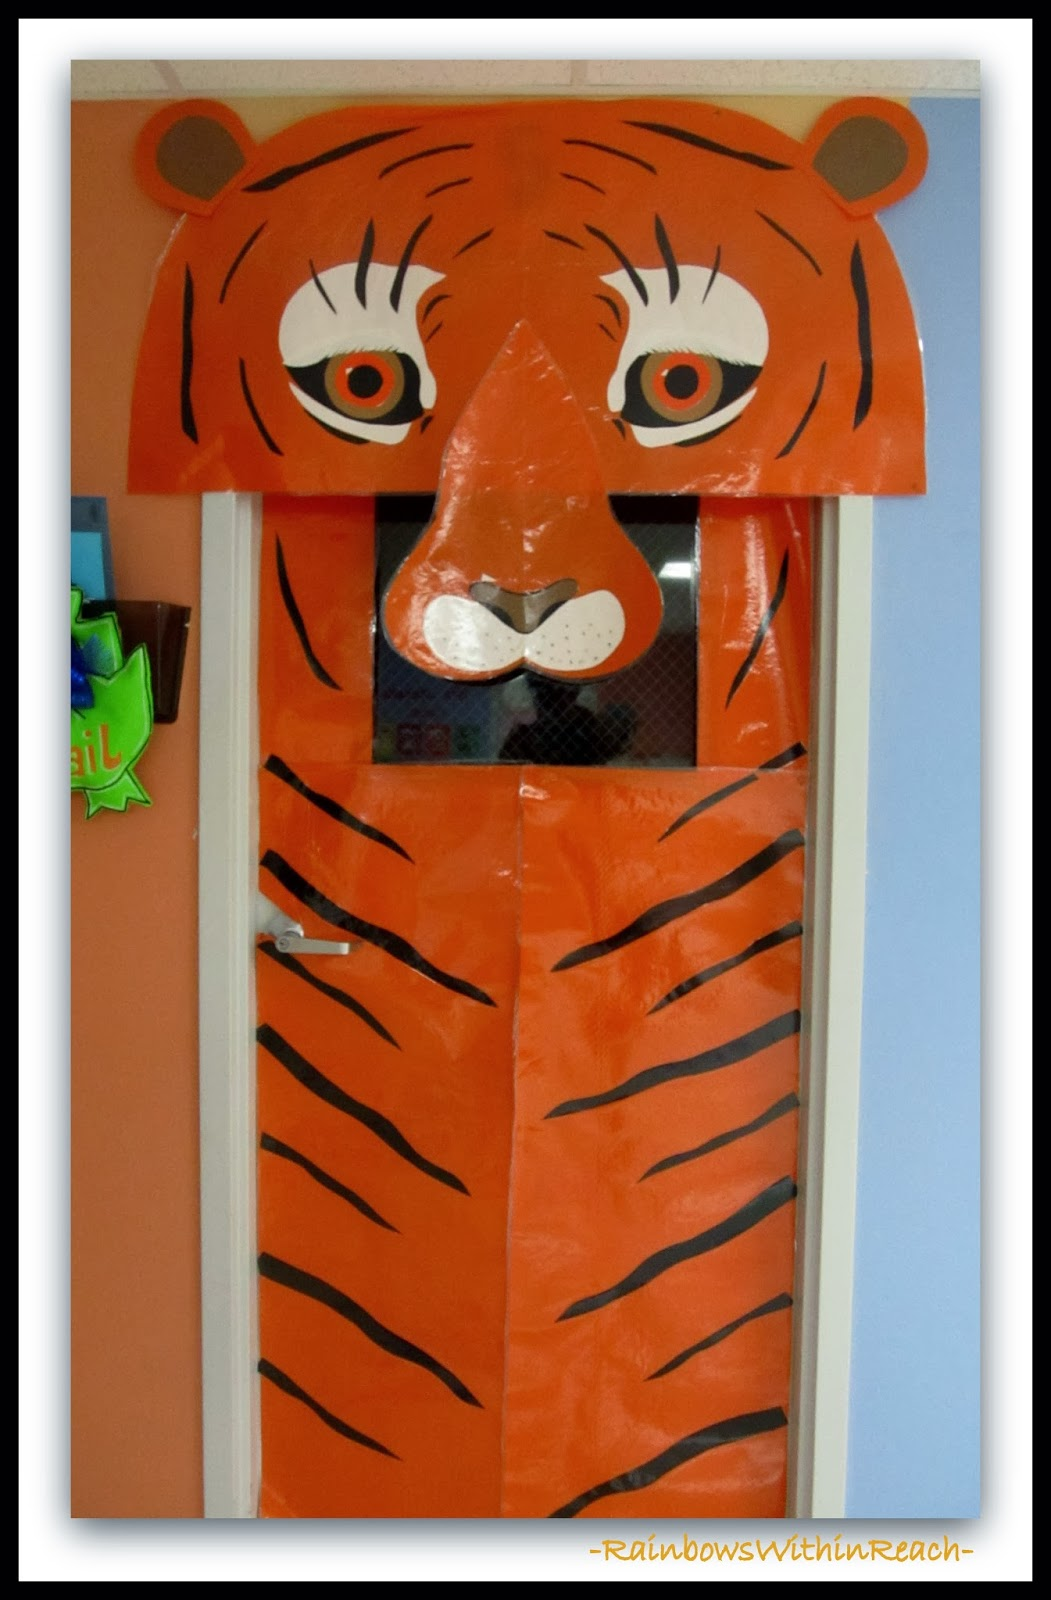 Decorated Classroom Door with Tiger Theme via RainbowsWithinReach